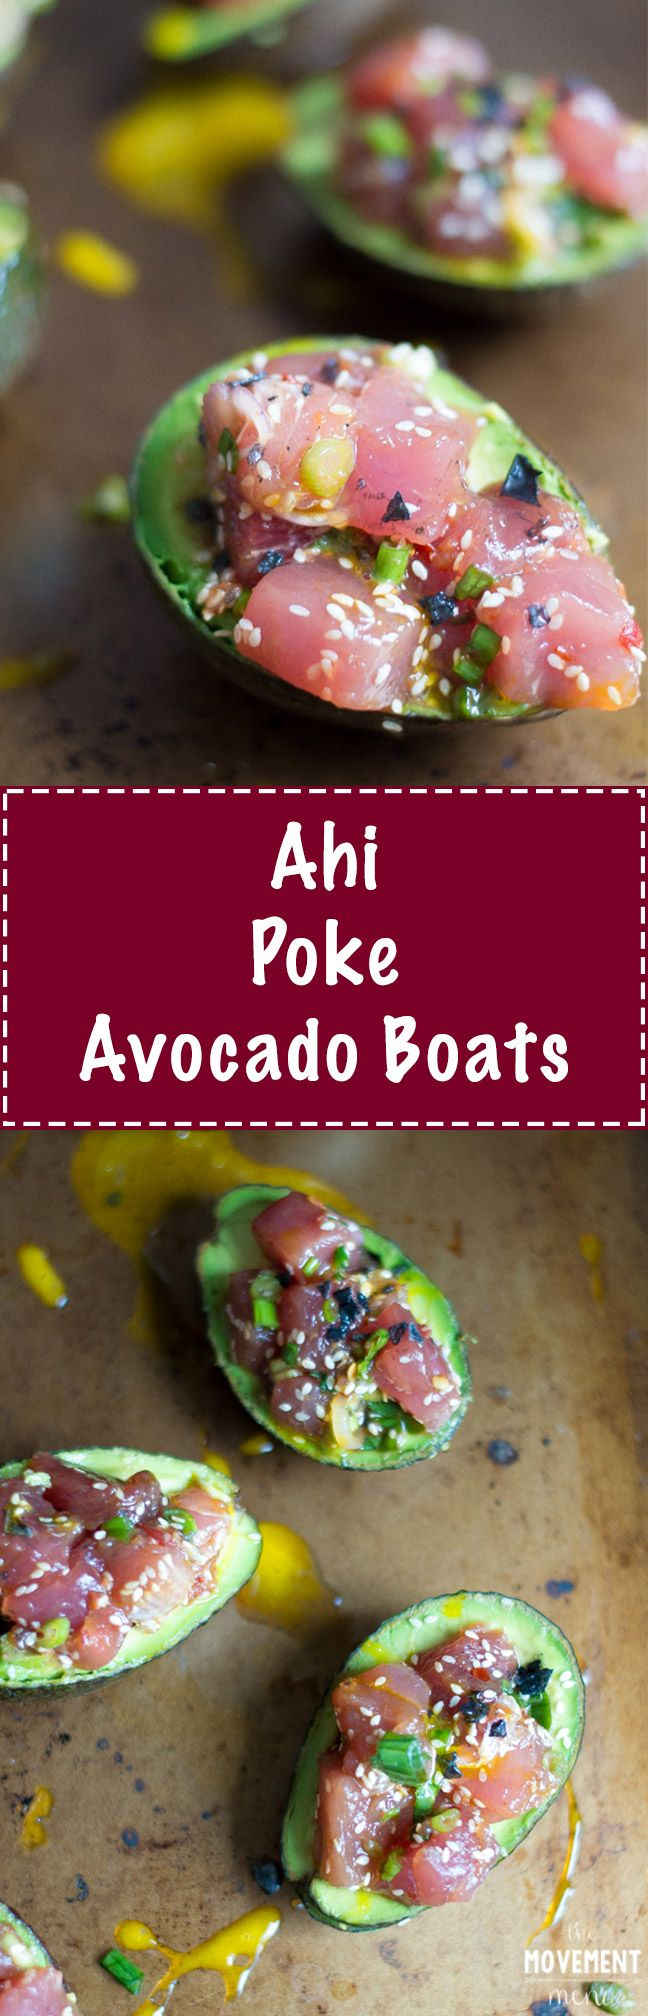 This Ahi Poke Avocado Boats recipe are super quick to make & are the perfect dish to bring to a barbecue/potluck. The flavors are simple, yet incredibly vibrant. TheMovementMenu.com